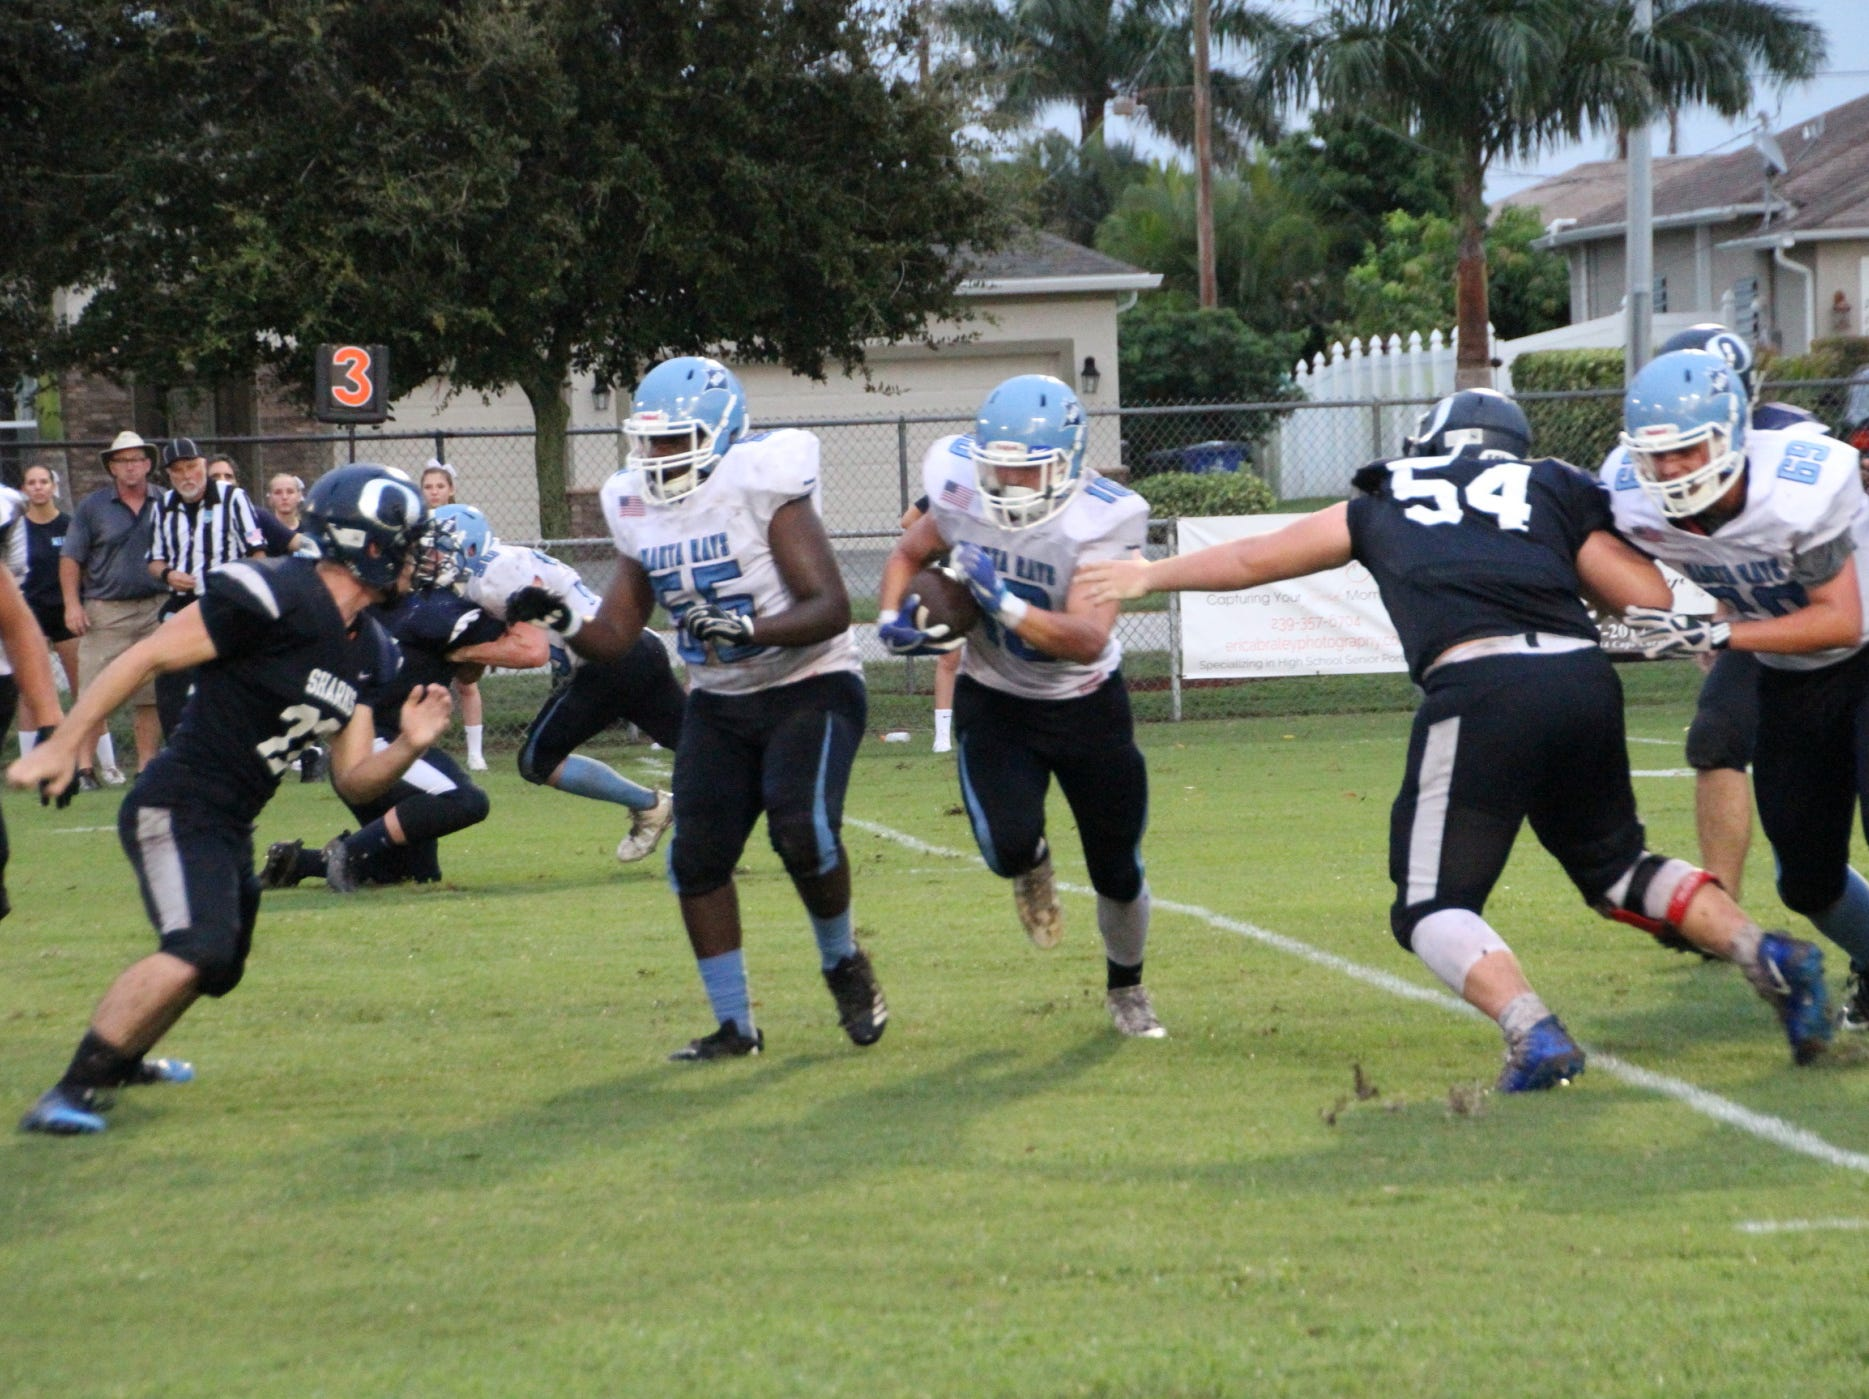 Marco Island traveled to Cape Coral to play Oasis on Friday night.